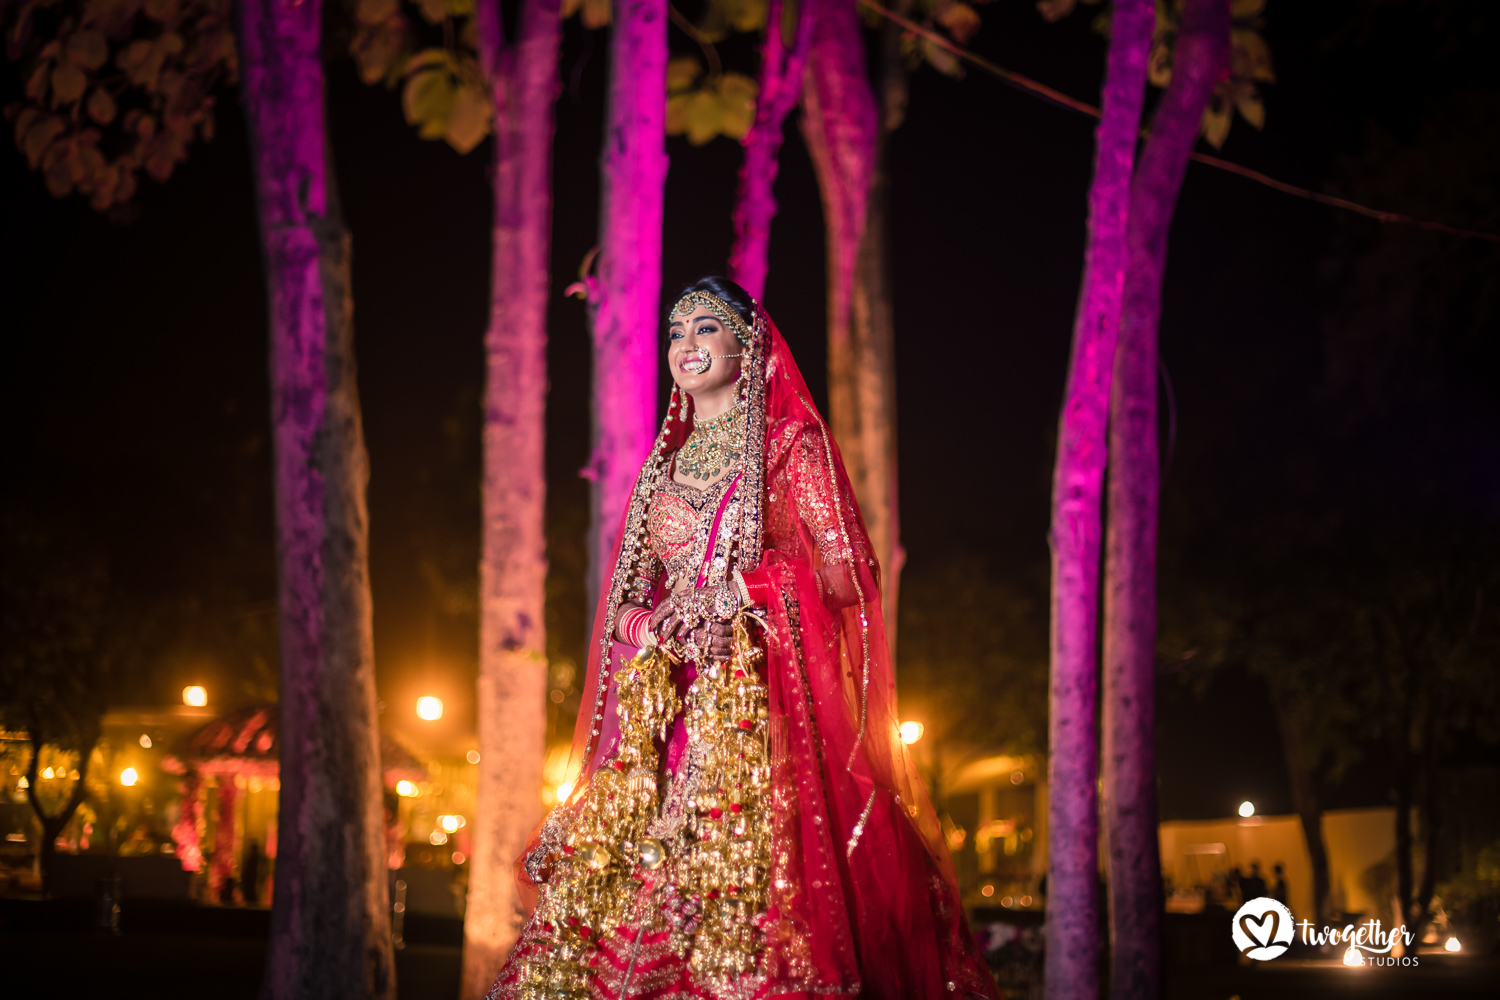 Hindu bridal portrait wedding photography